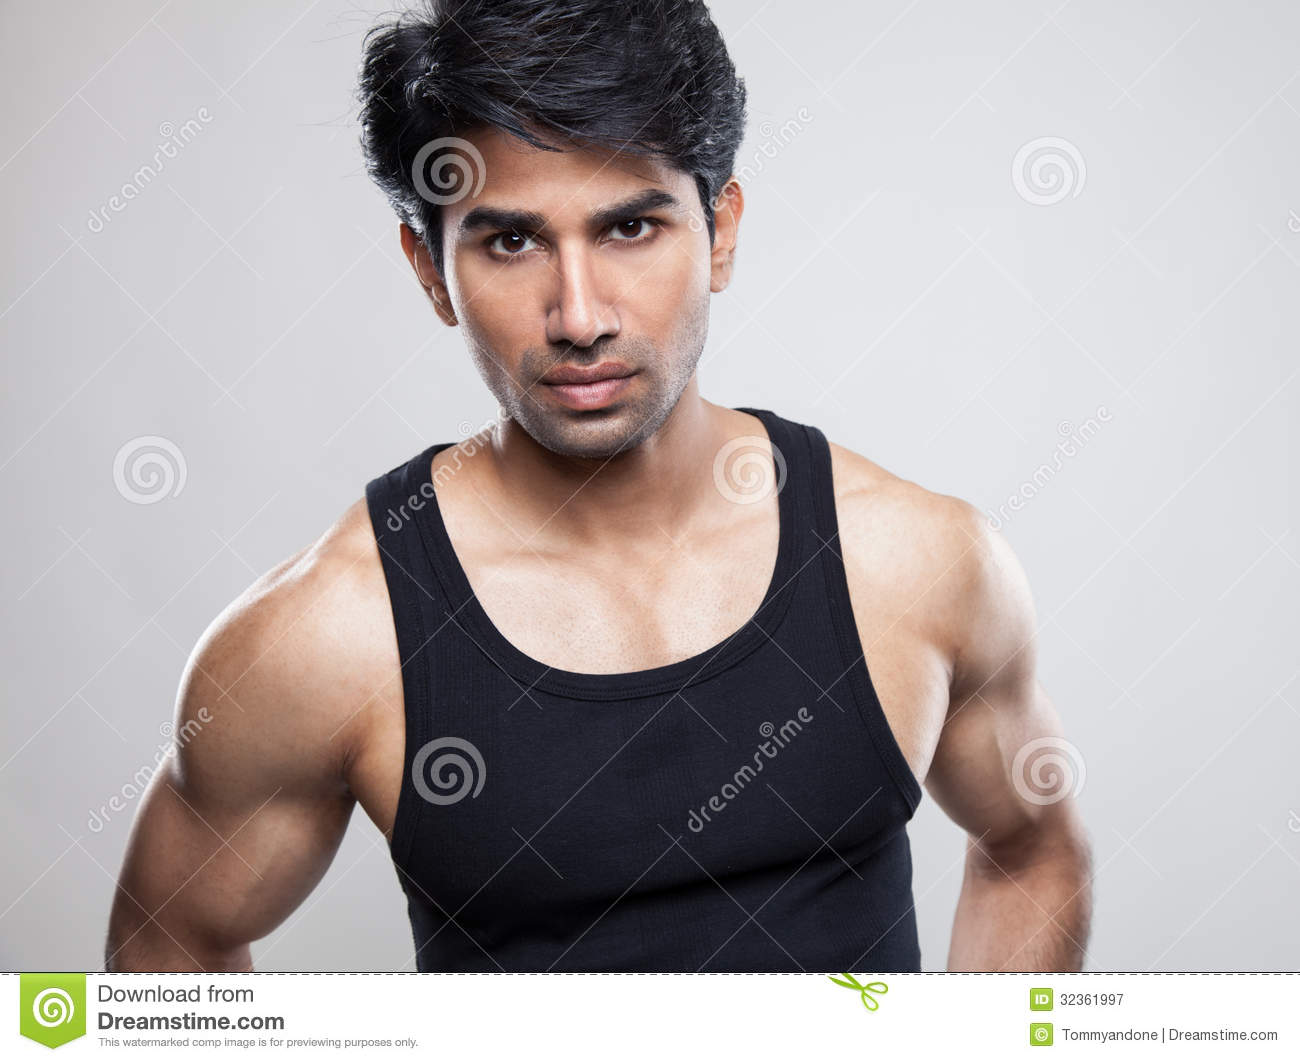 Good Looking Young Man Royalty Free Stock Photography ...  Good Looking Young Man